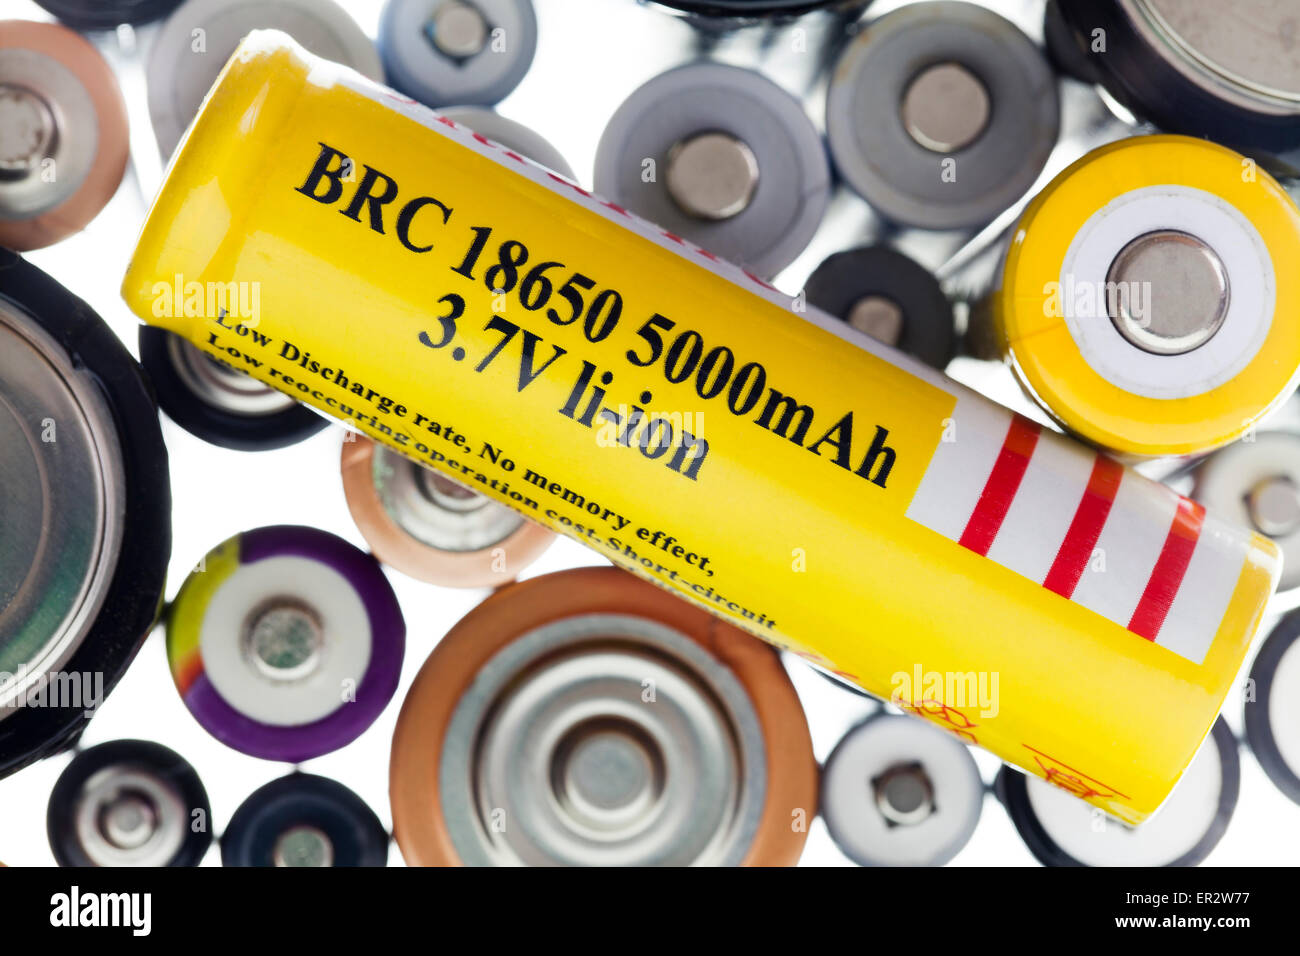 Rechargeable Lithium Ion (Li-ion) battery - Stock Image